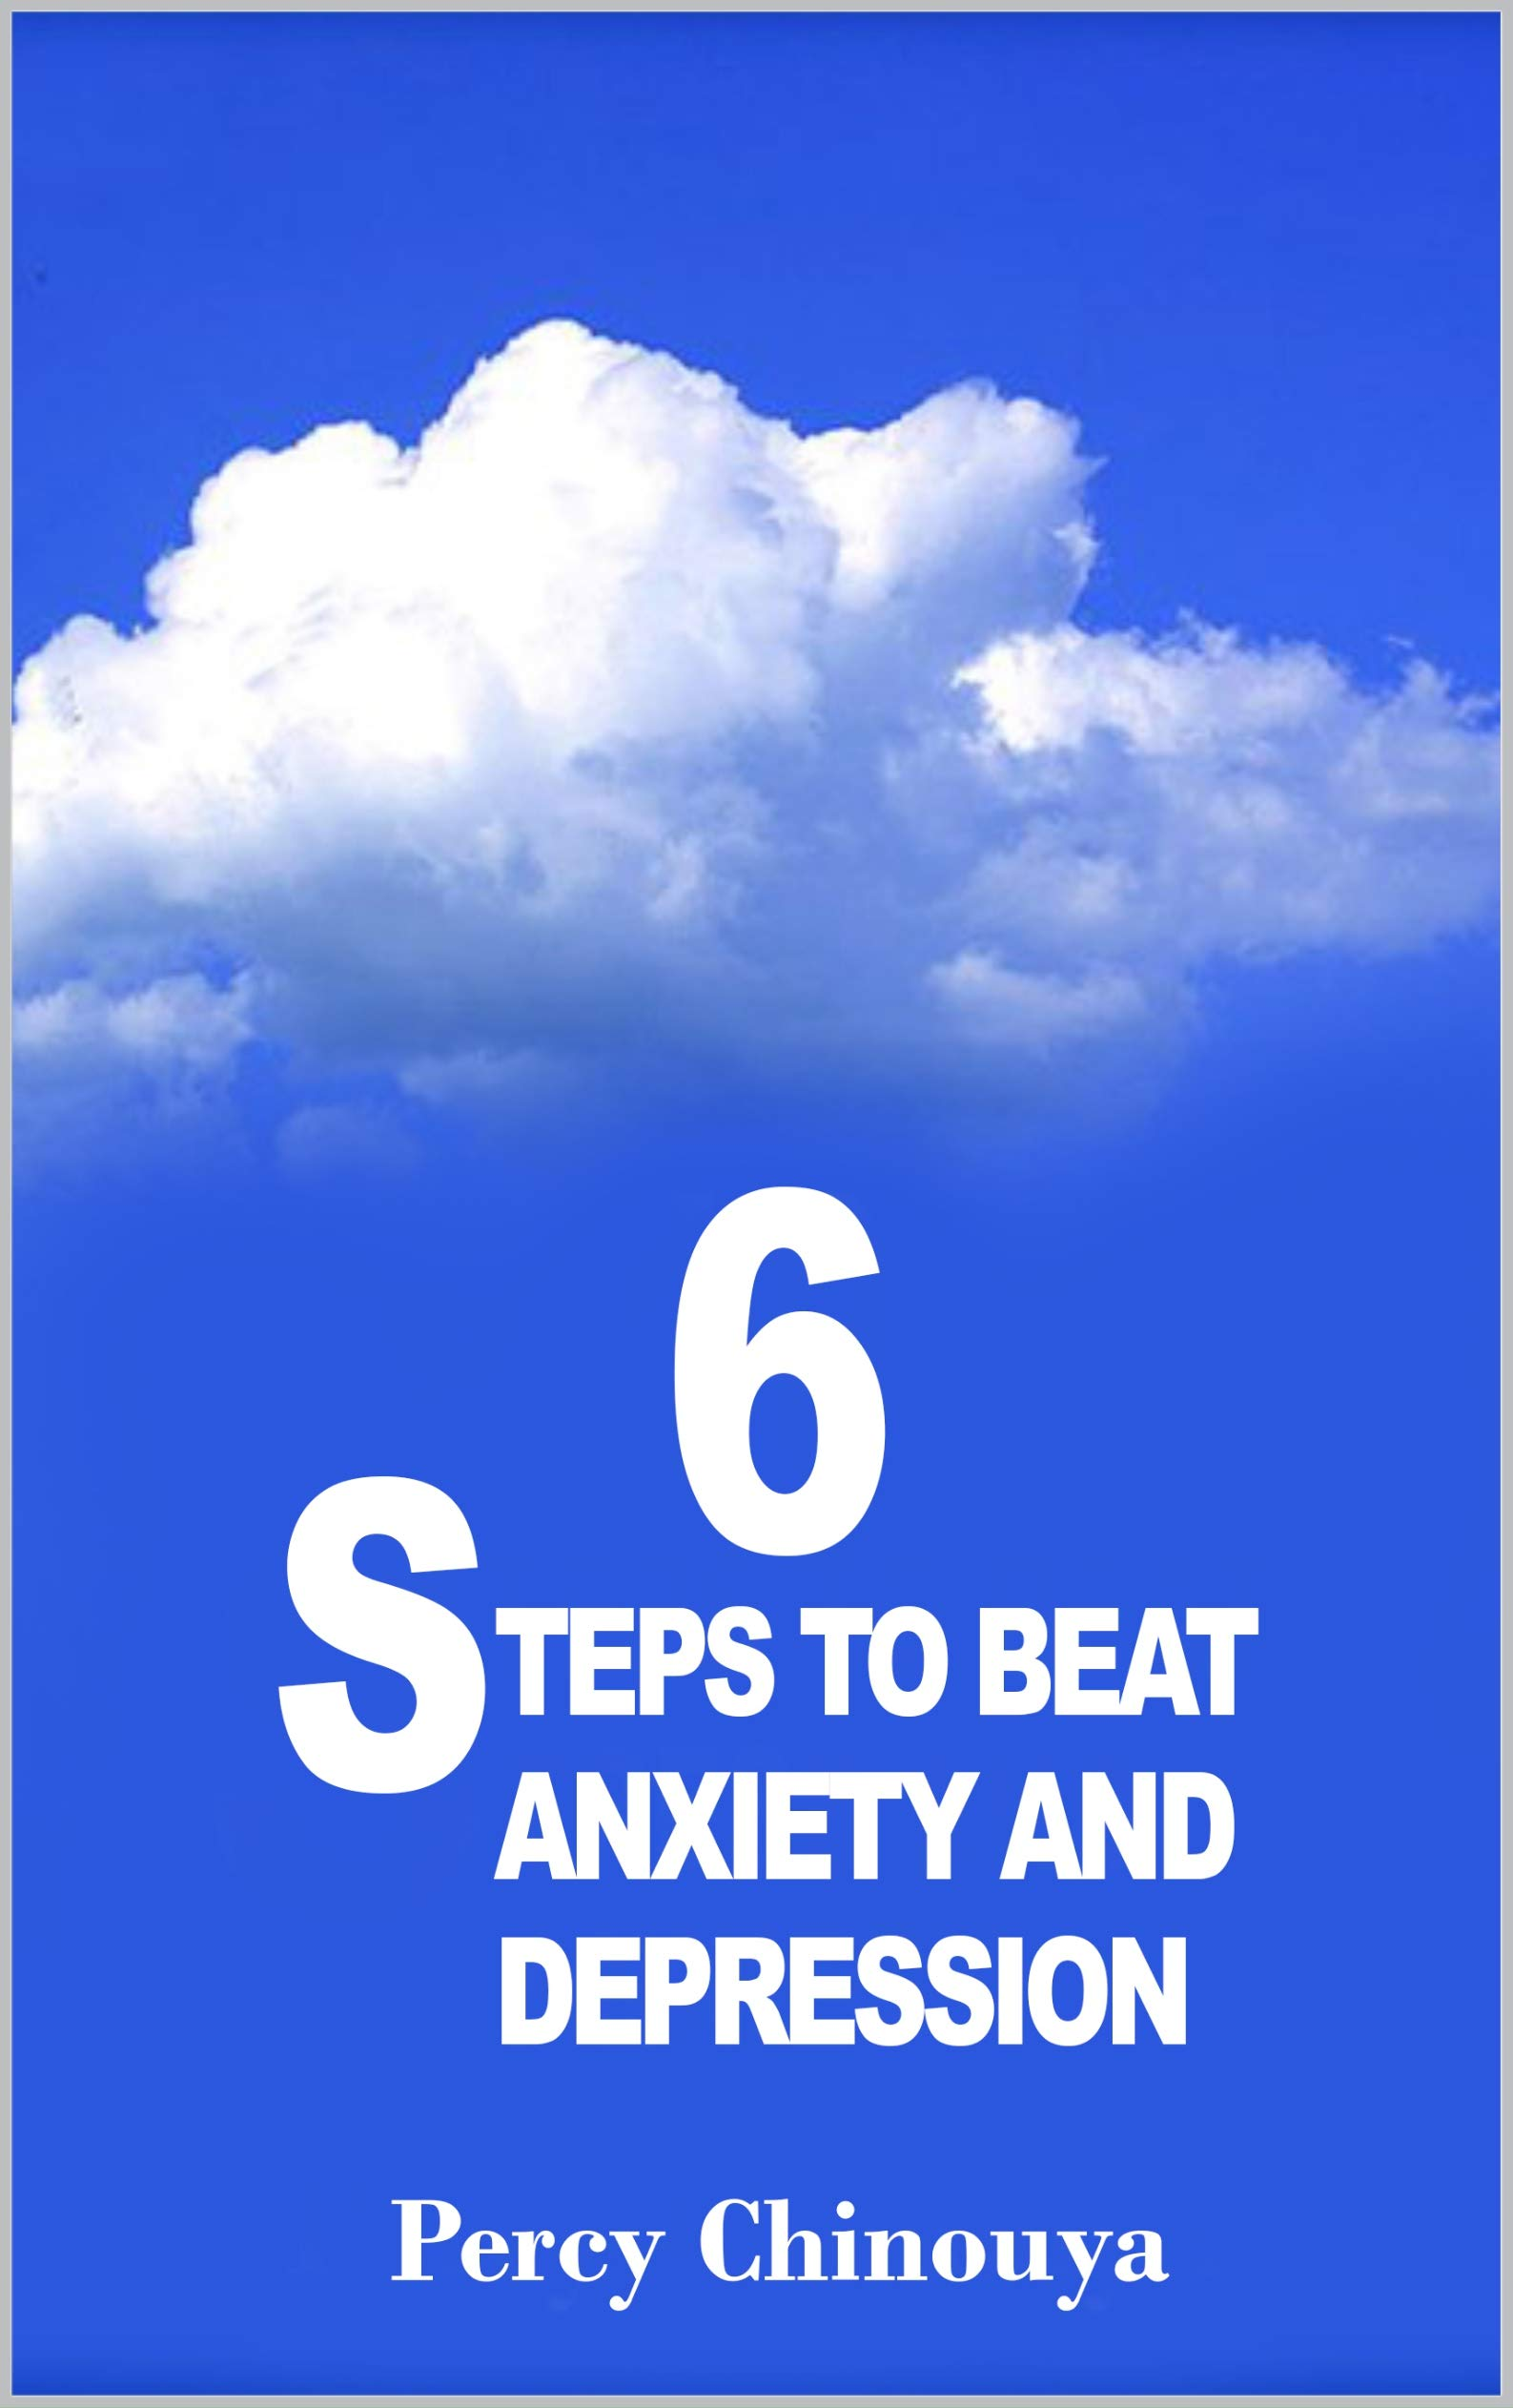 6 STEPS TO BEAT ANXIETY AND DEPRESSION